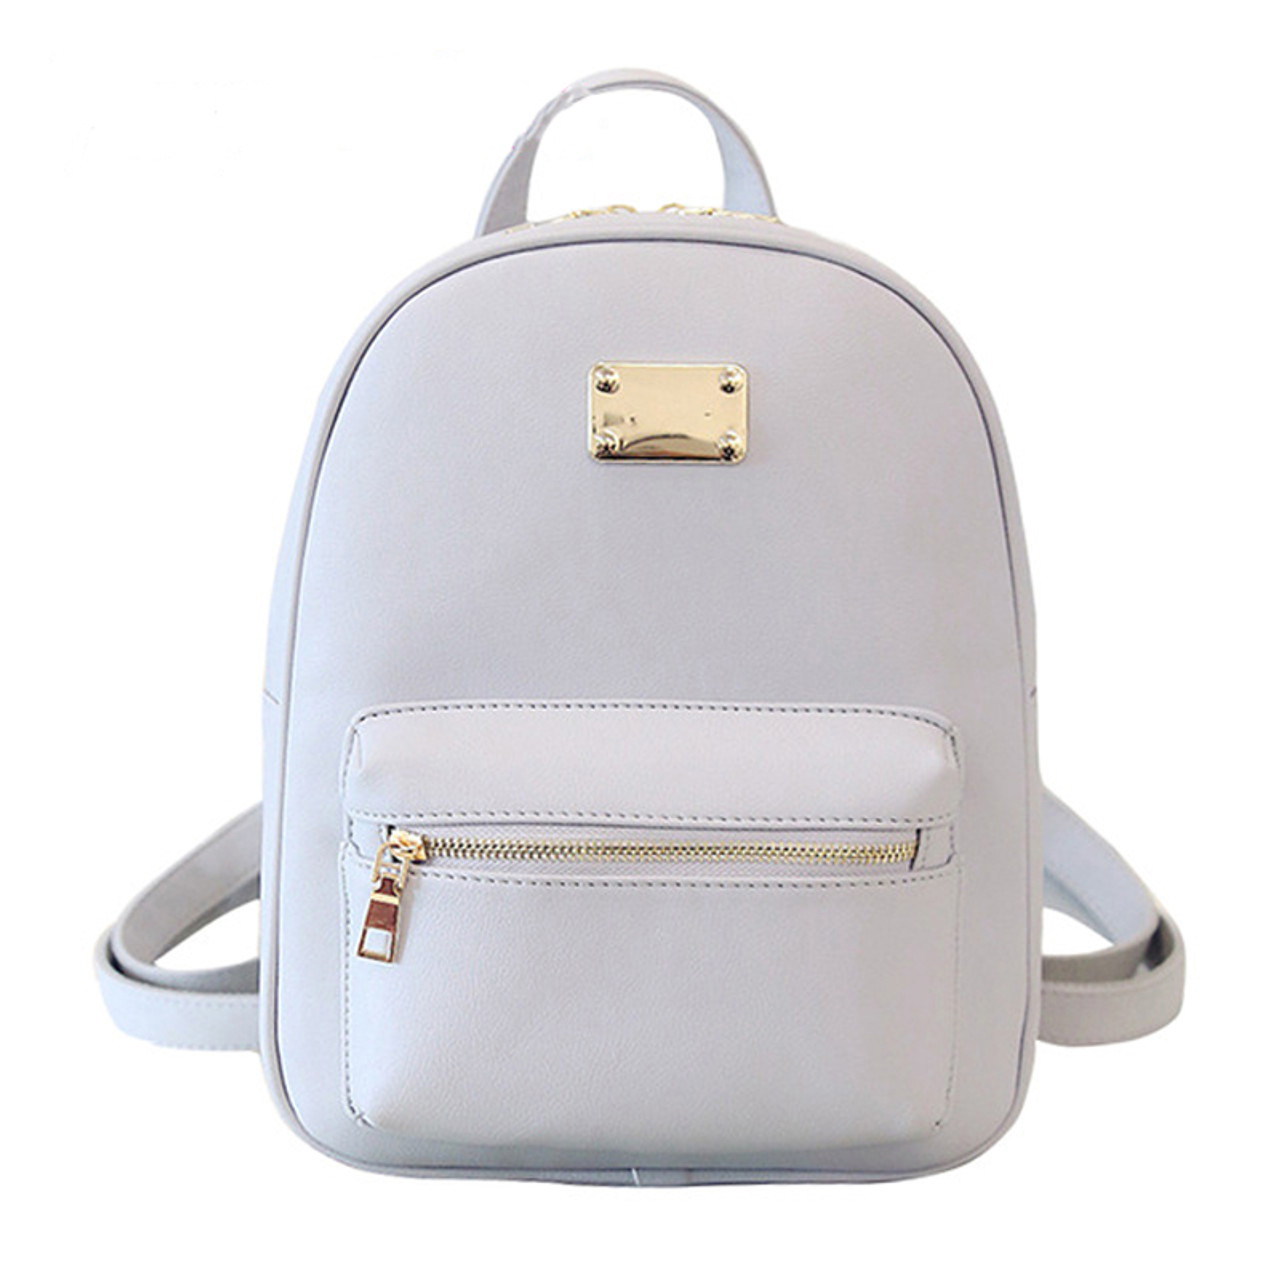 3999e5813039 Women Backpack Small Size Black PU Leather Women s Backpacks Fashion School  Girls Bags Female Back Pack Famous Brand mochilas - OnshopDeals.Com